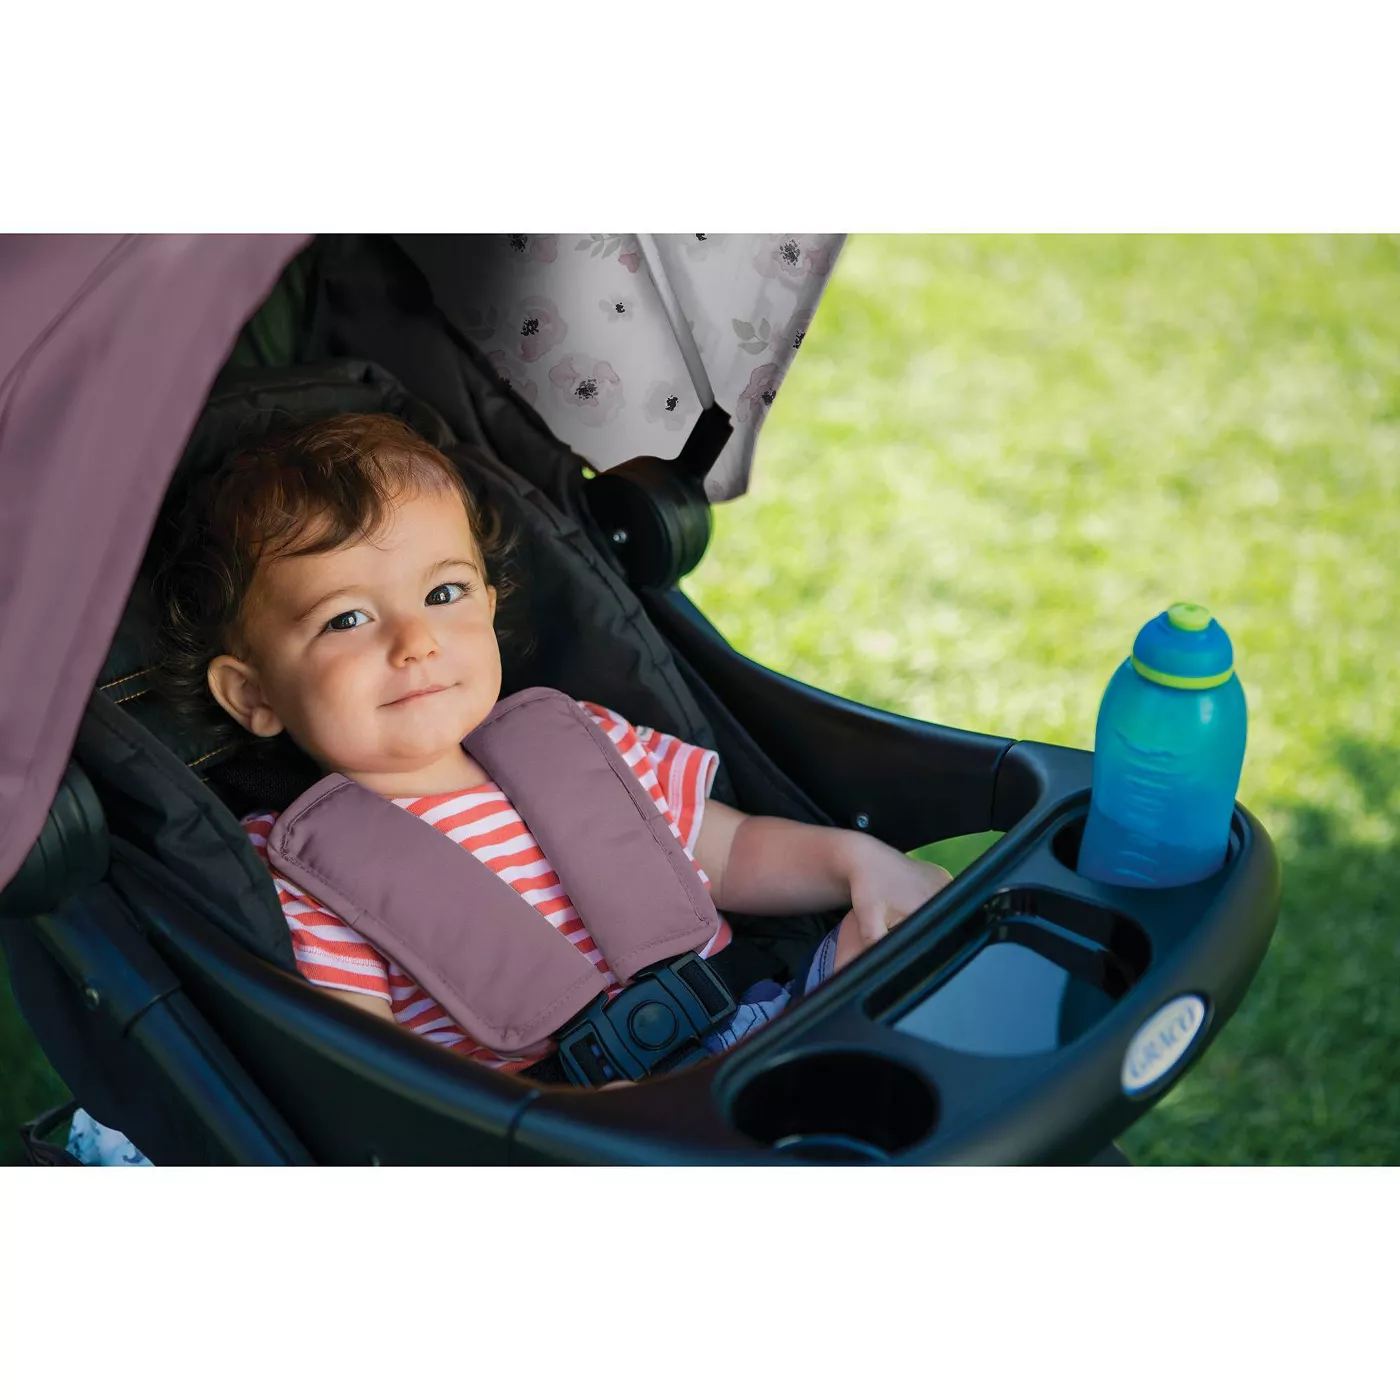 10% Off Graco Verb Click Connect Travel System Gracie